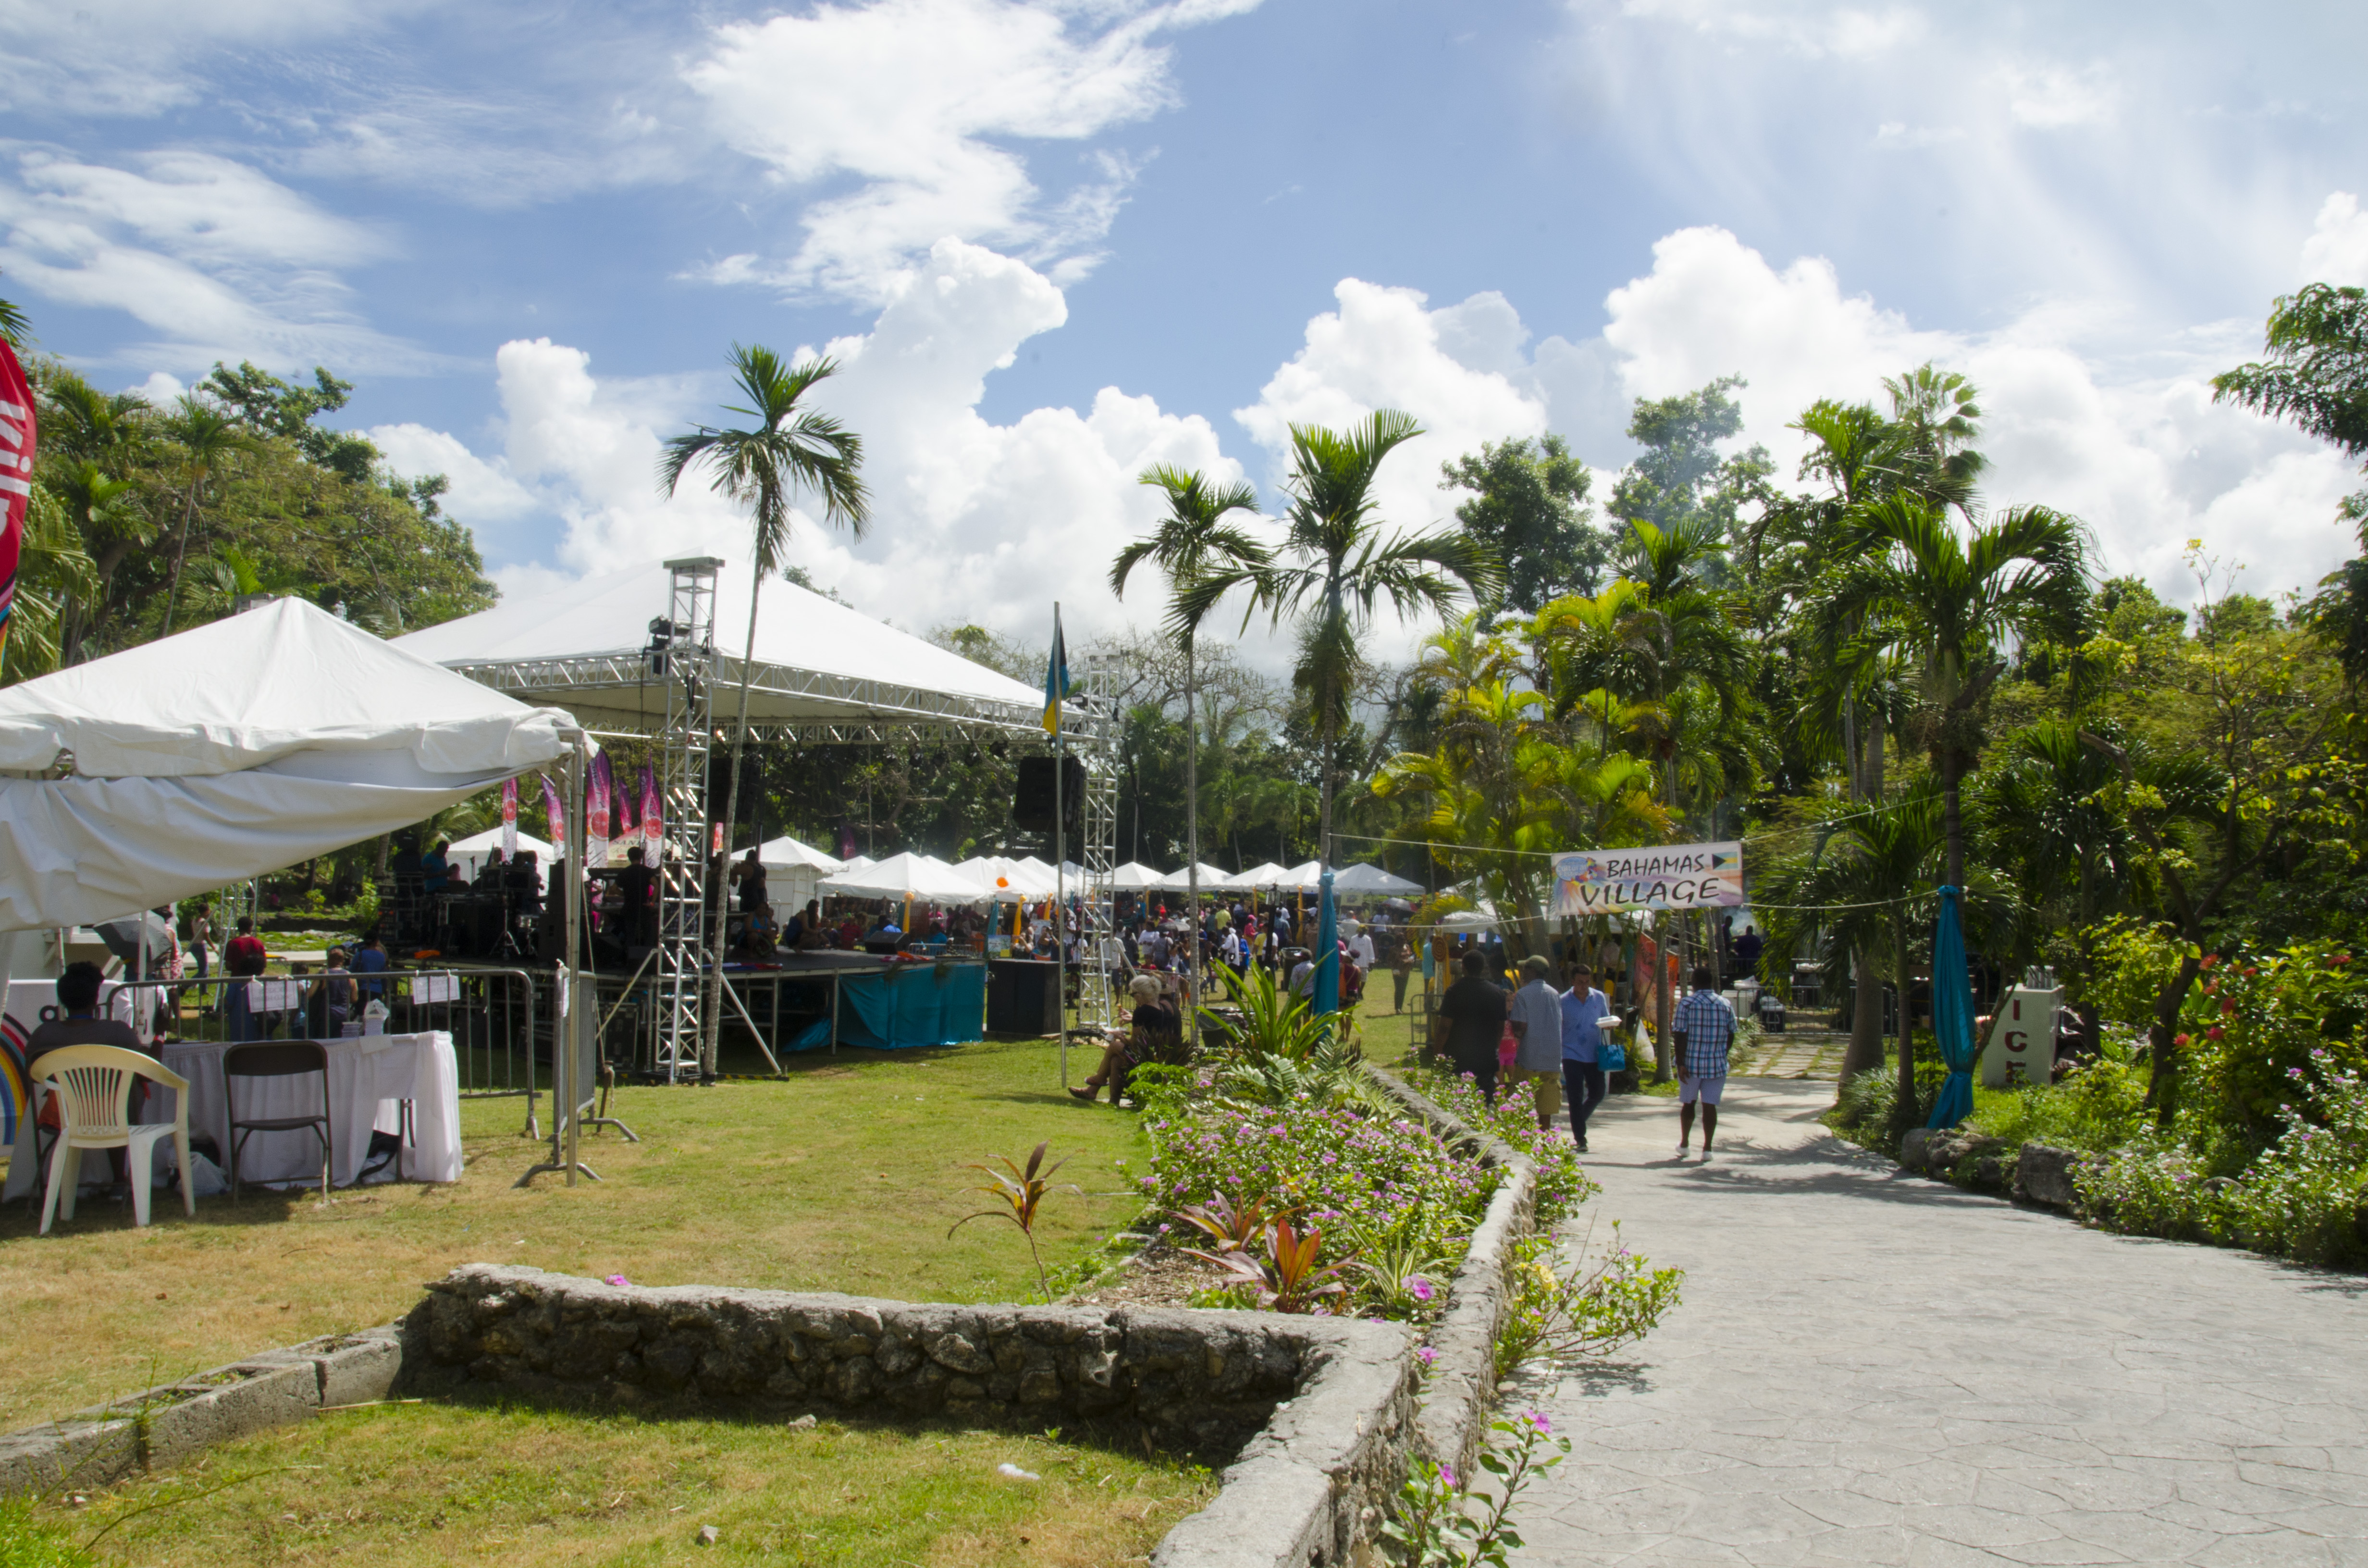 Entrance to Bahamian Village at International Cultural Festival